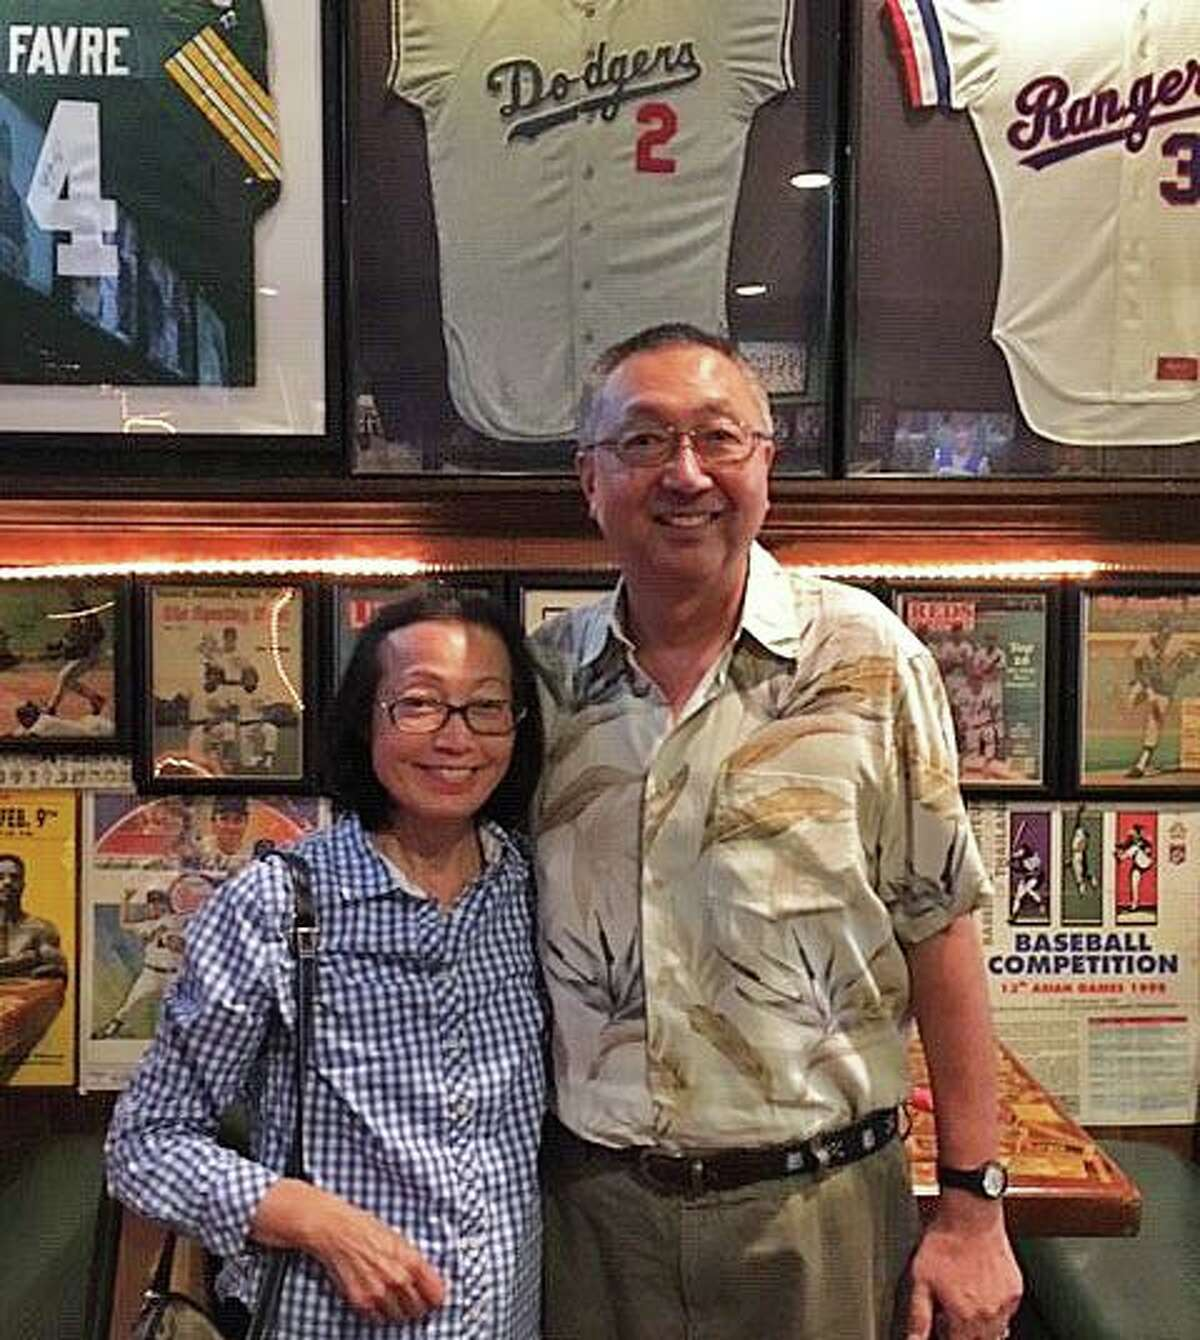 Michael Ego, the former director of the University of Connecticut Stamford campus, with his sister, Kimi, at Bobby Valentine's Sports Gallery in Stamford, Connecticut, in 2016.